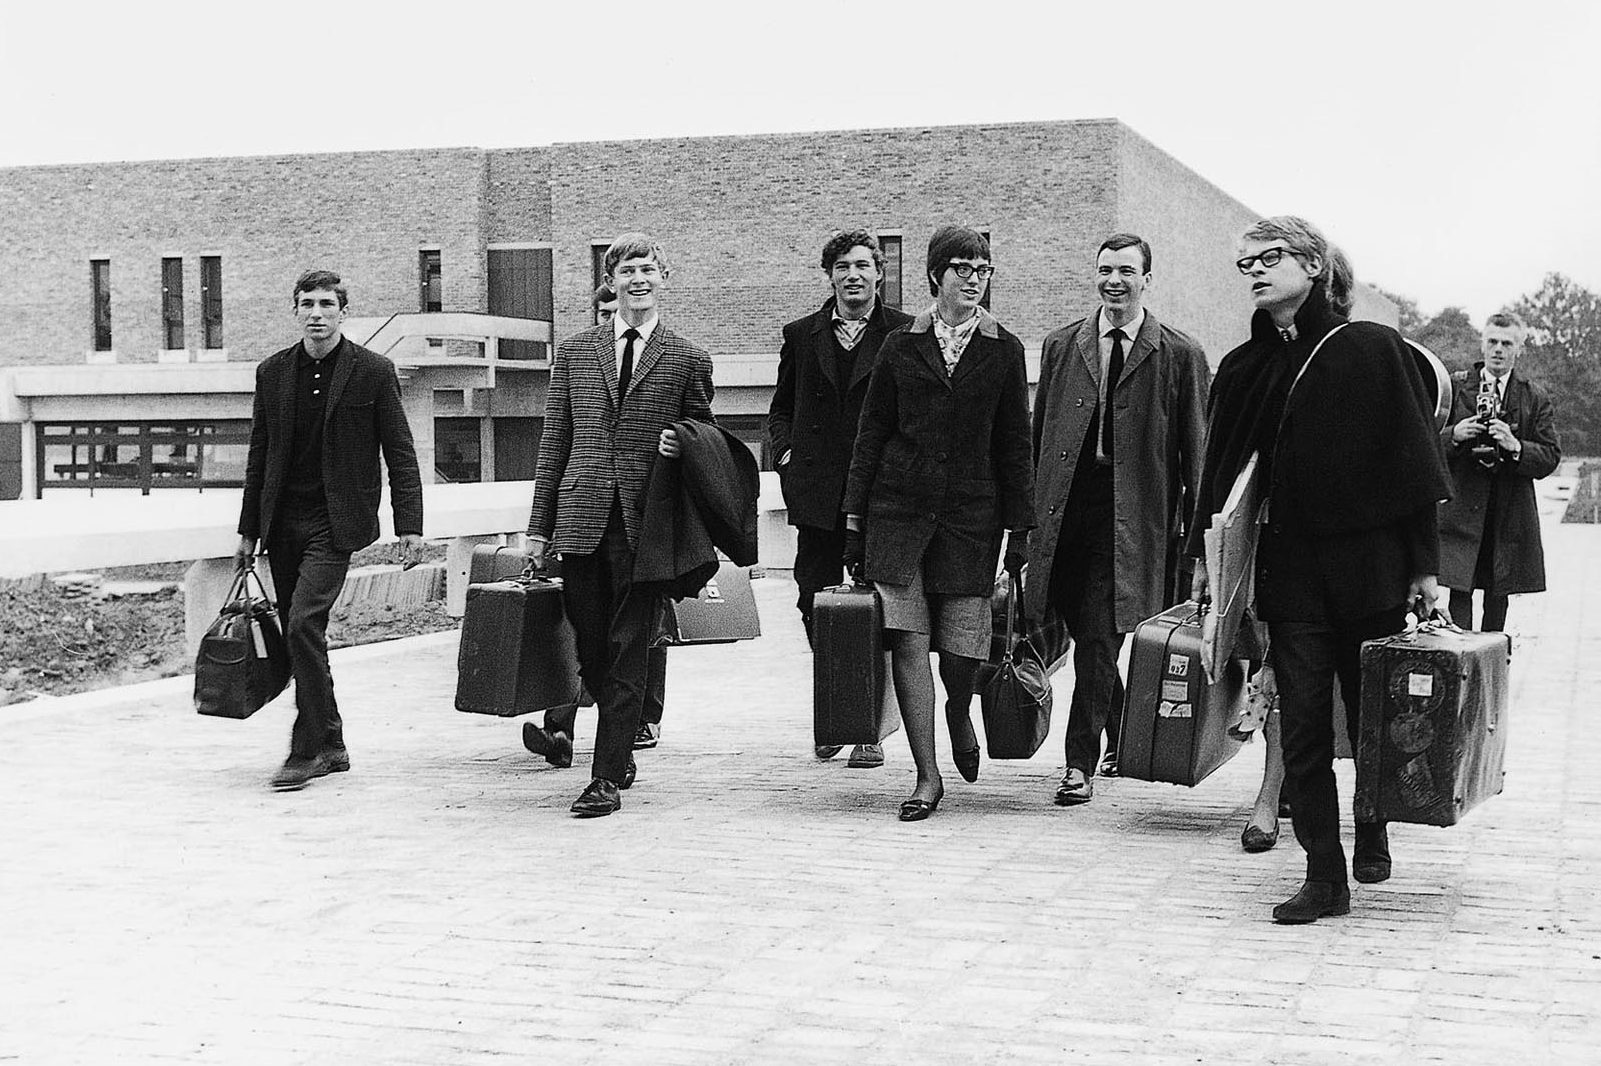 First cohort of students arriving at the University of Kent in 1965